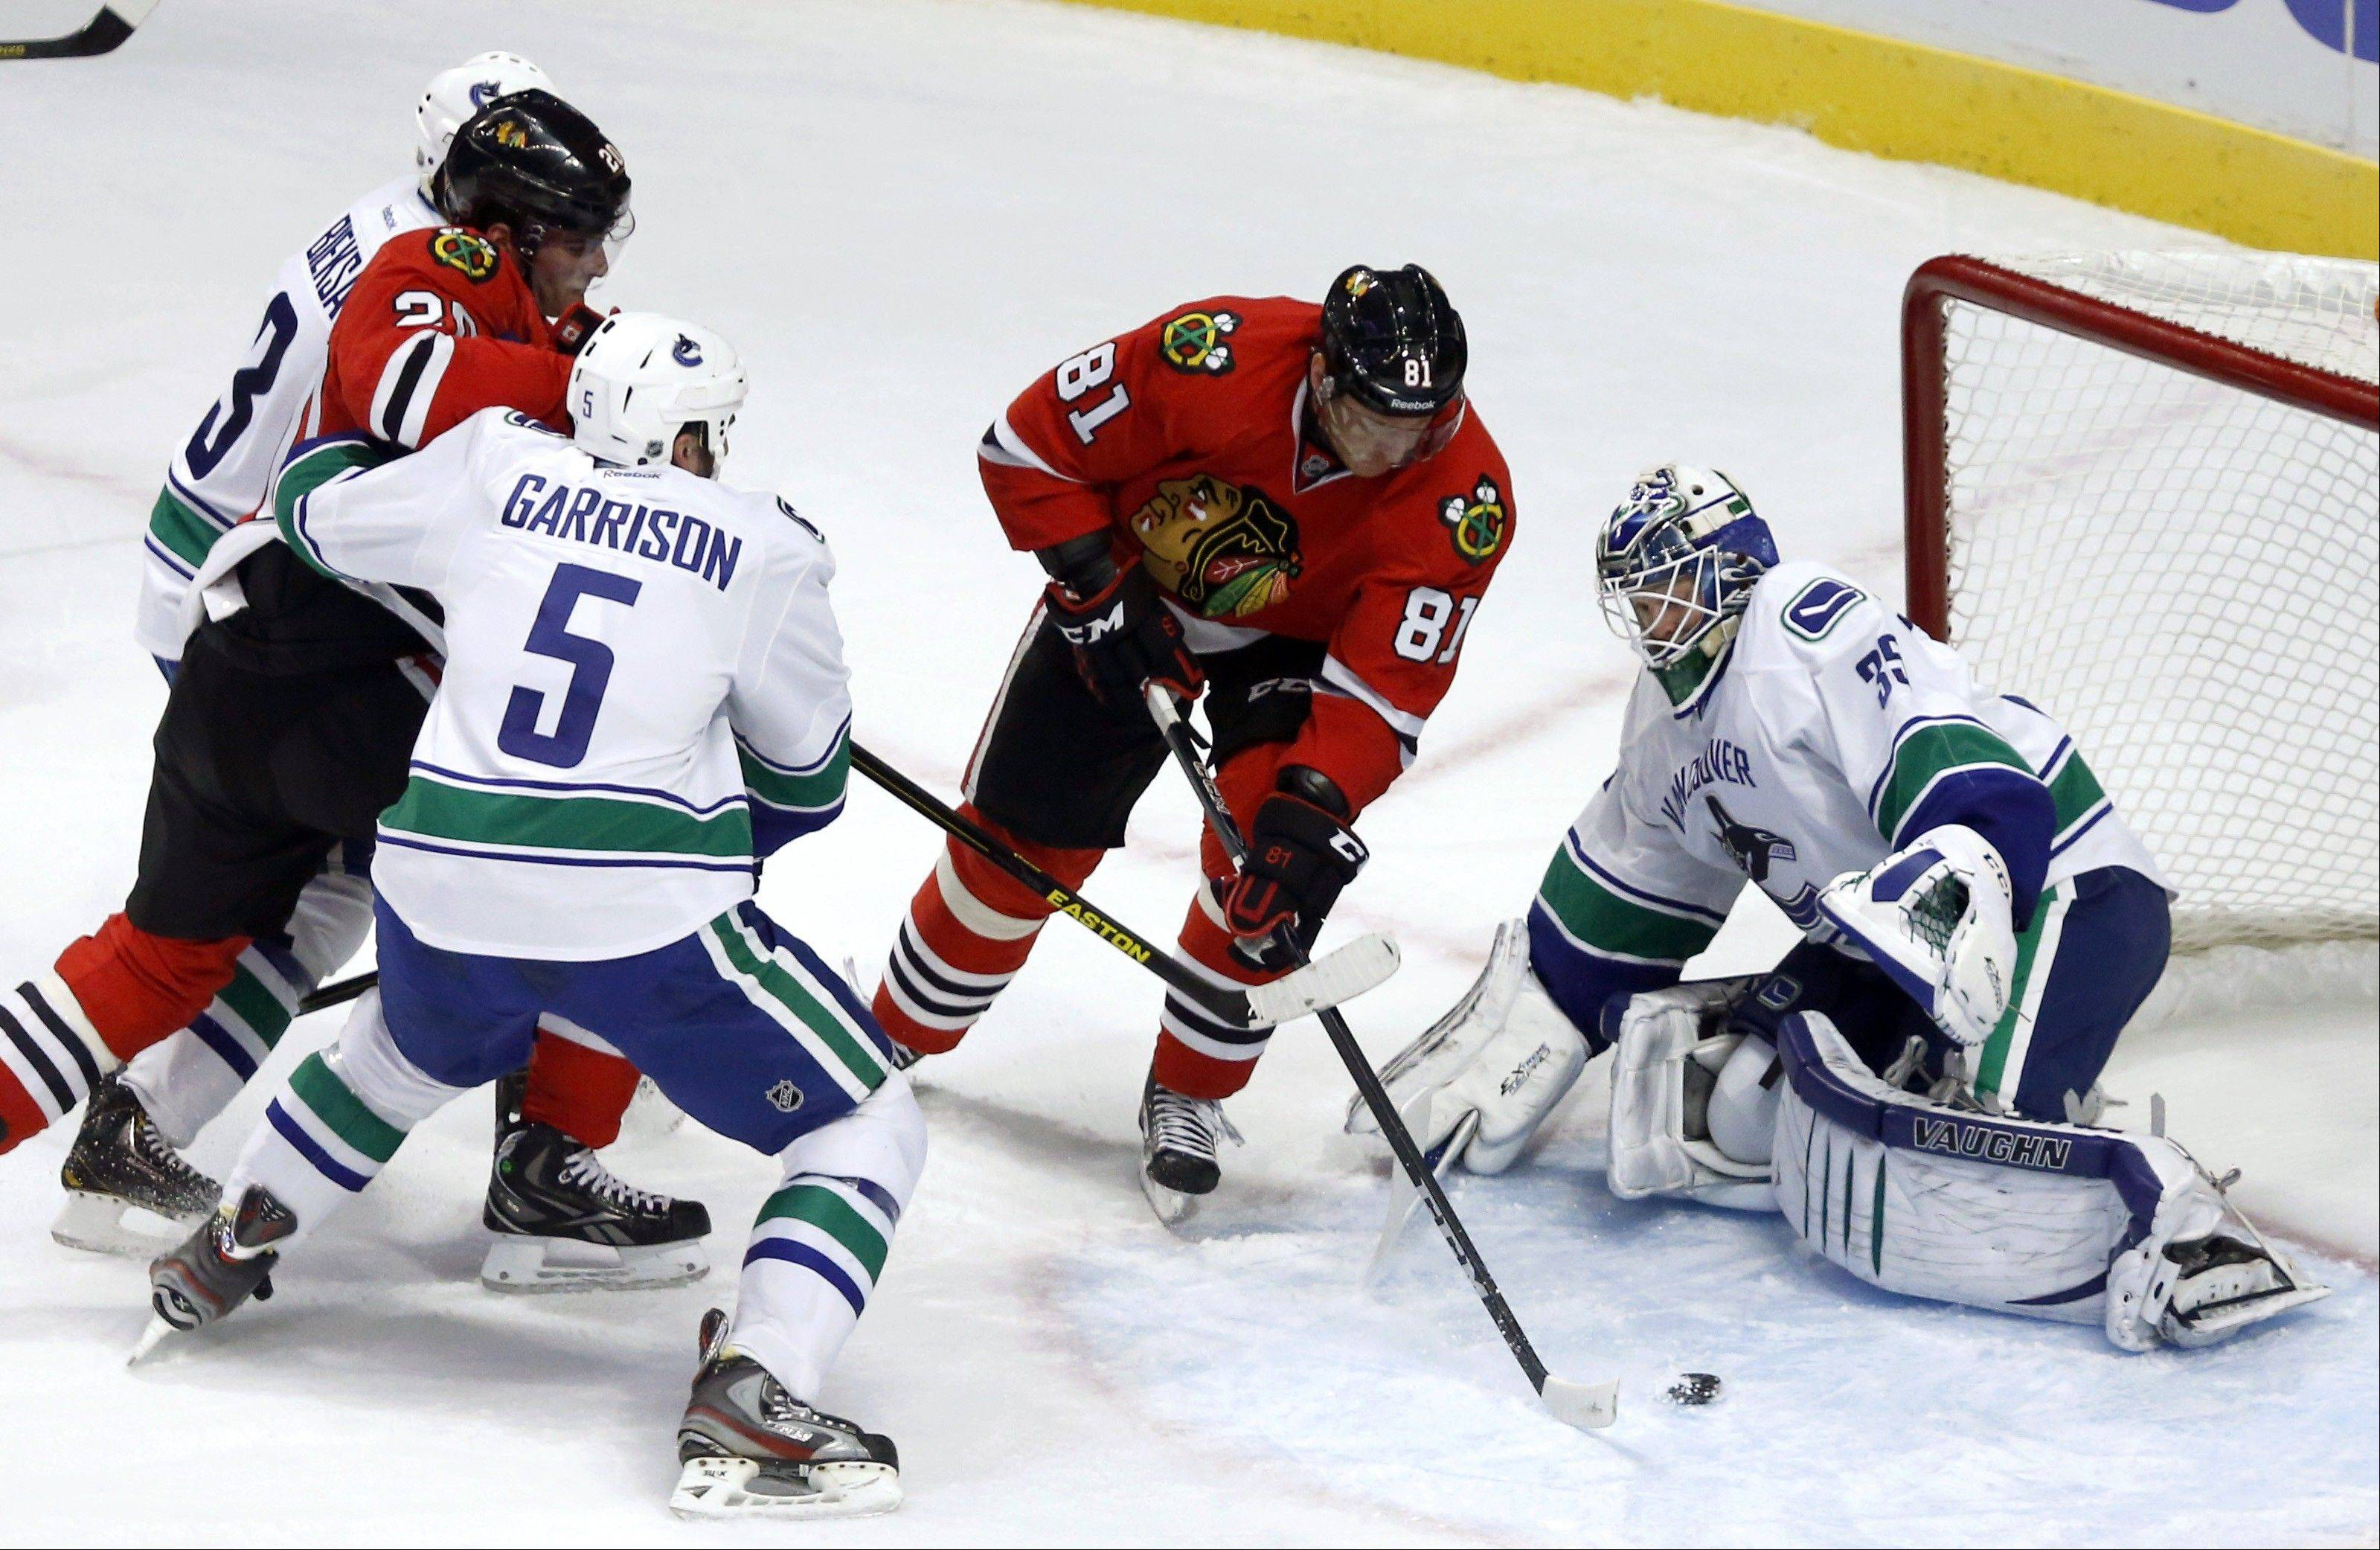 Images: Blackhawks vs. Canucks